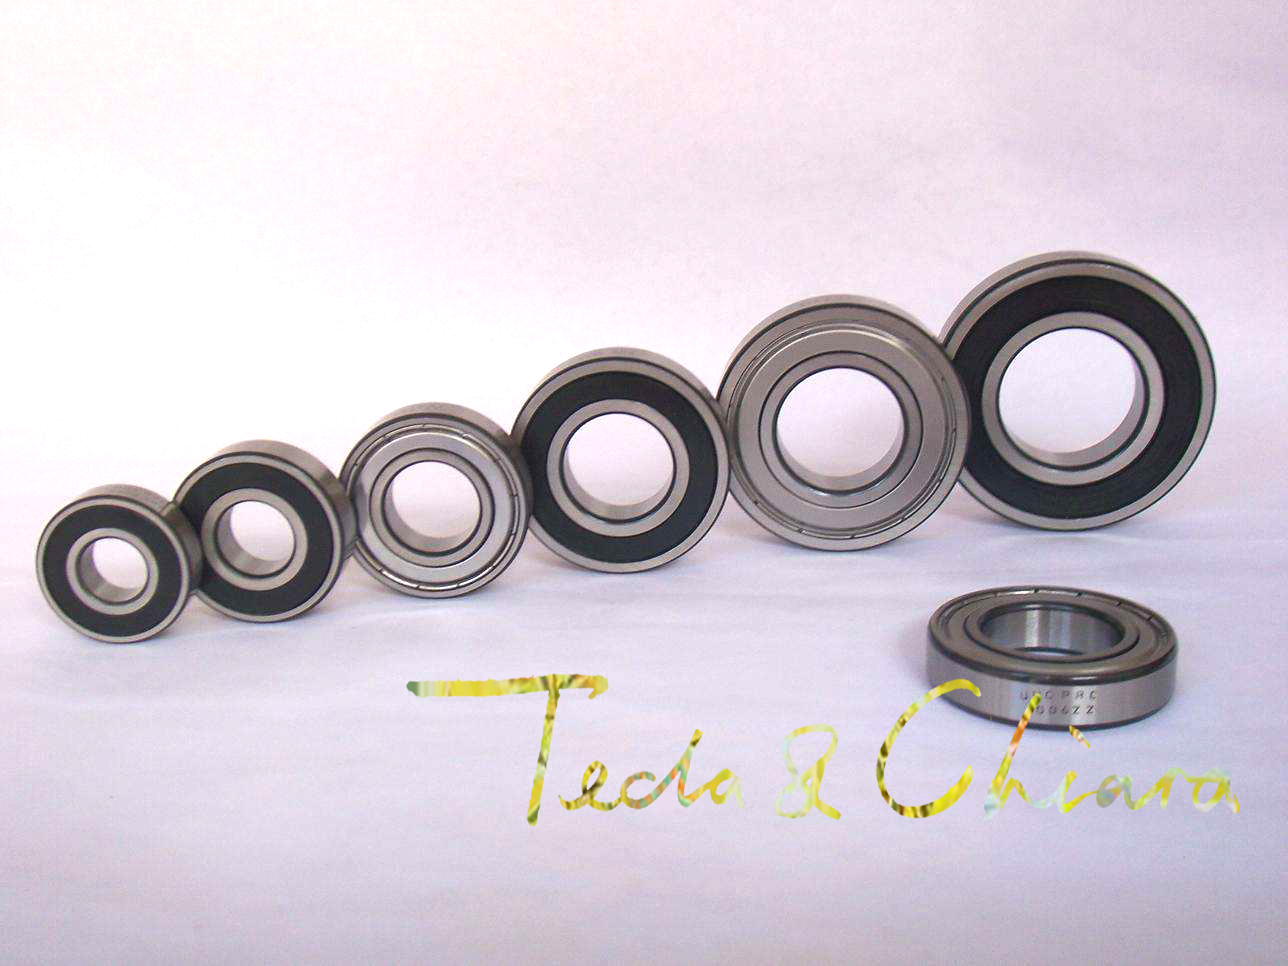 636 636ZZ 636RS 636-2Z 636Z 636-2RS ZZ RS RZ 2RZ Deep Groove Ball Bearings 6 X 22 X 7mm